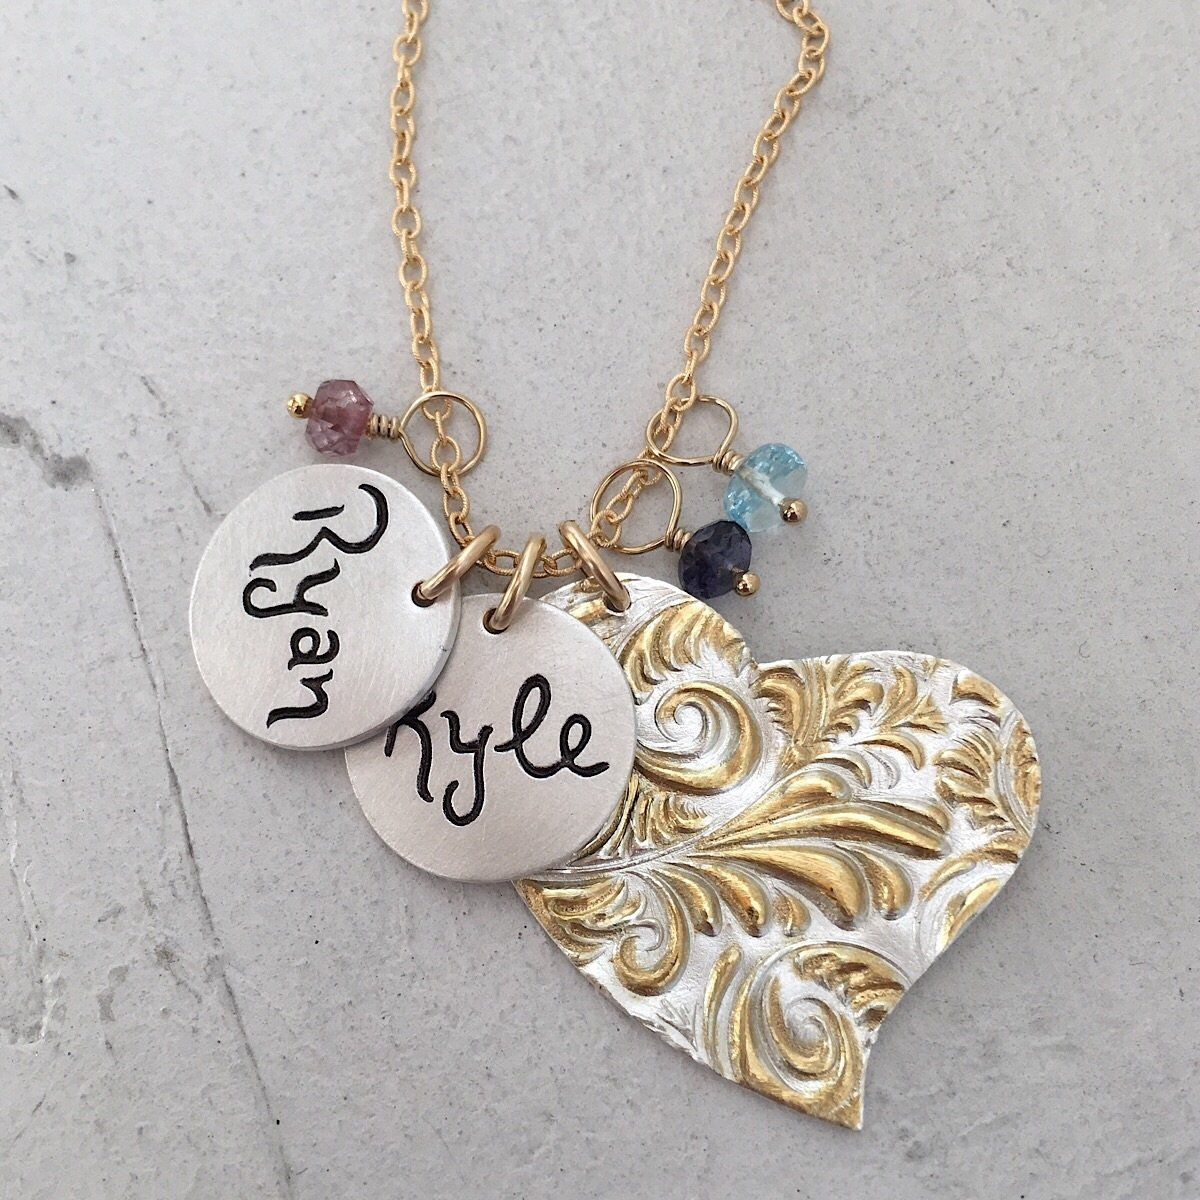 Plume Heart Charm Necklace  - IsabelleGraceJewelry